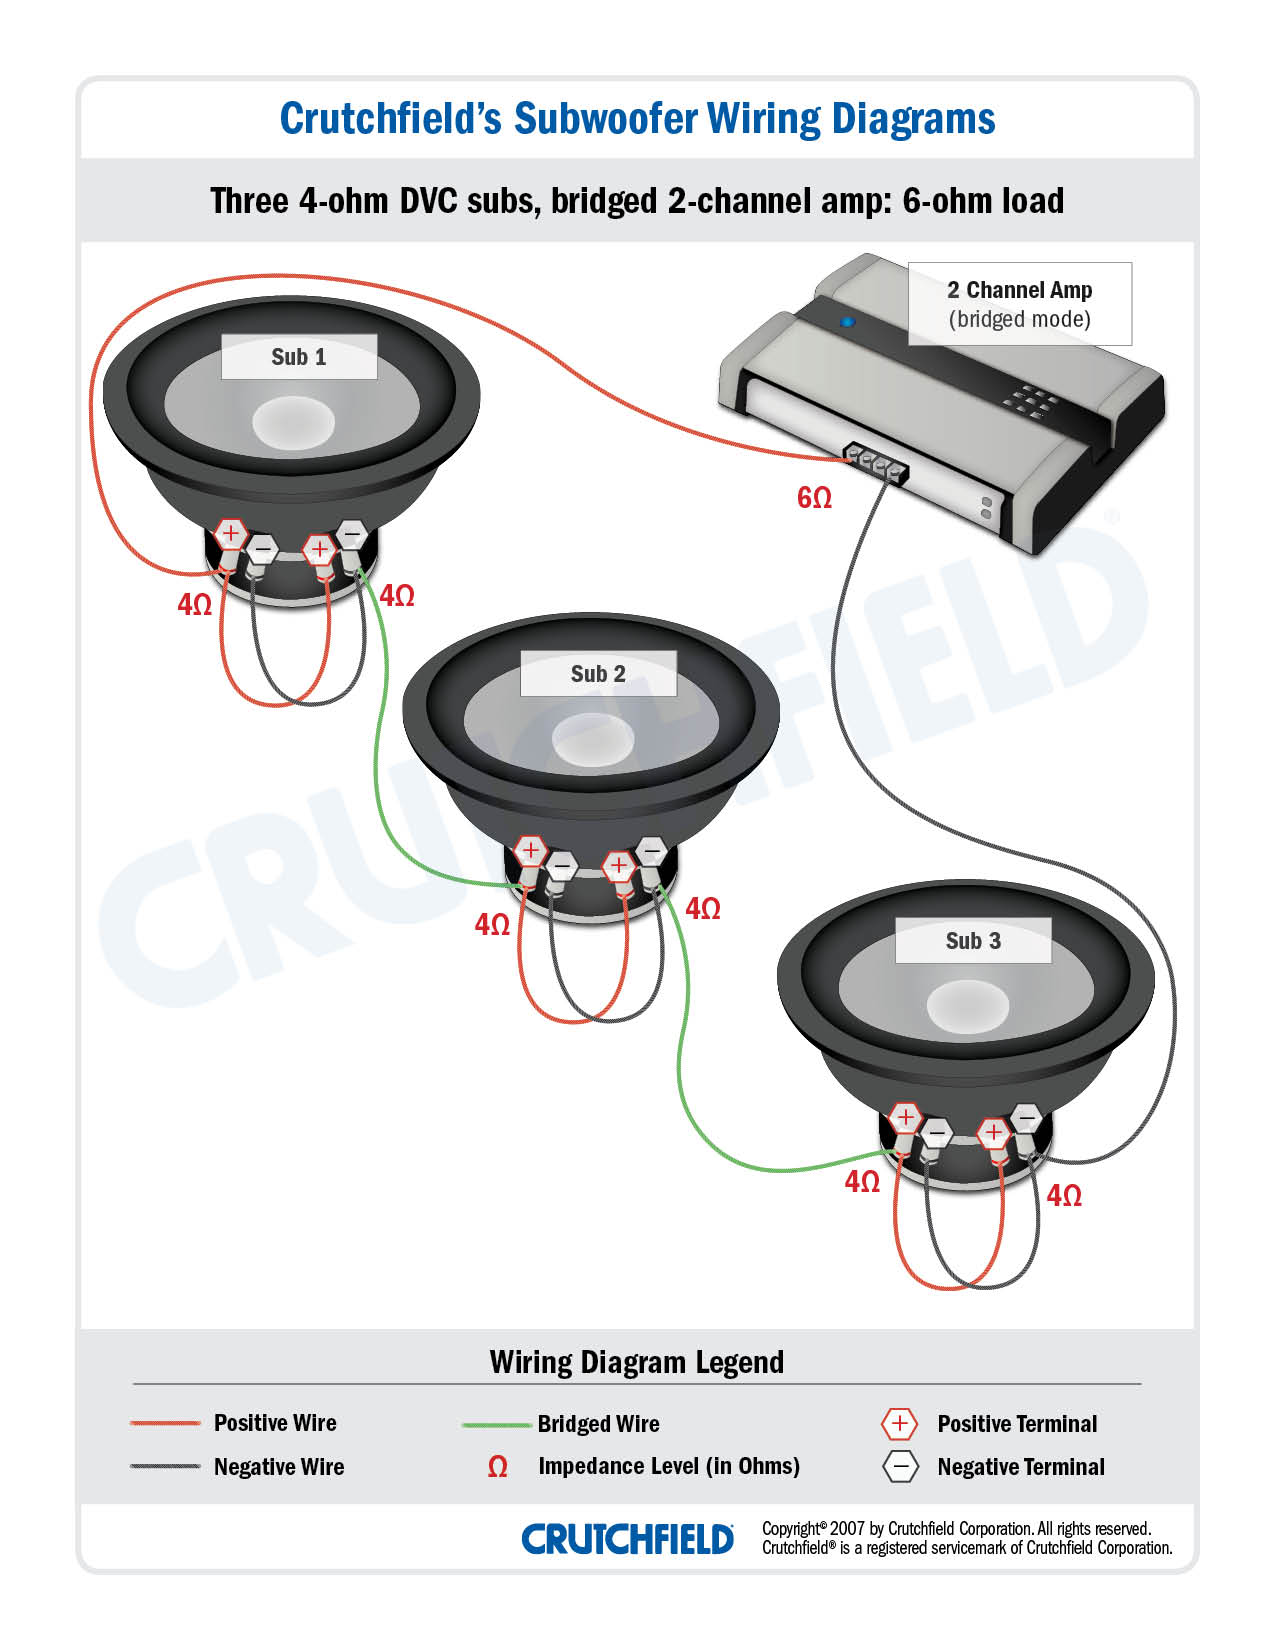 3 DVC 4 ohm 2 ch subwoofer wiring diagrams kicker cvr wiring diagram at edmiracle.co